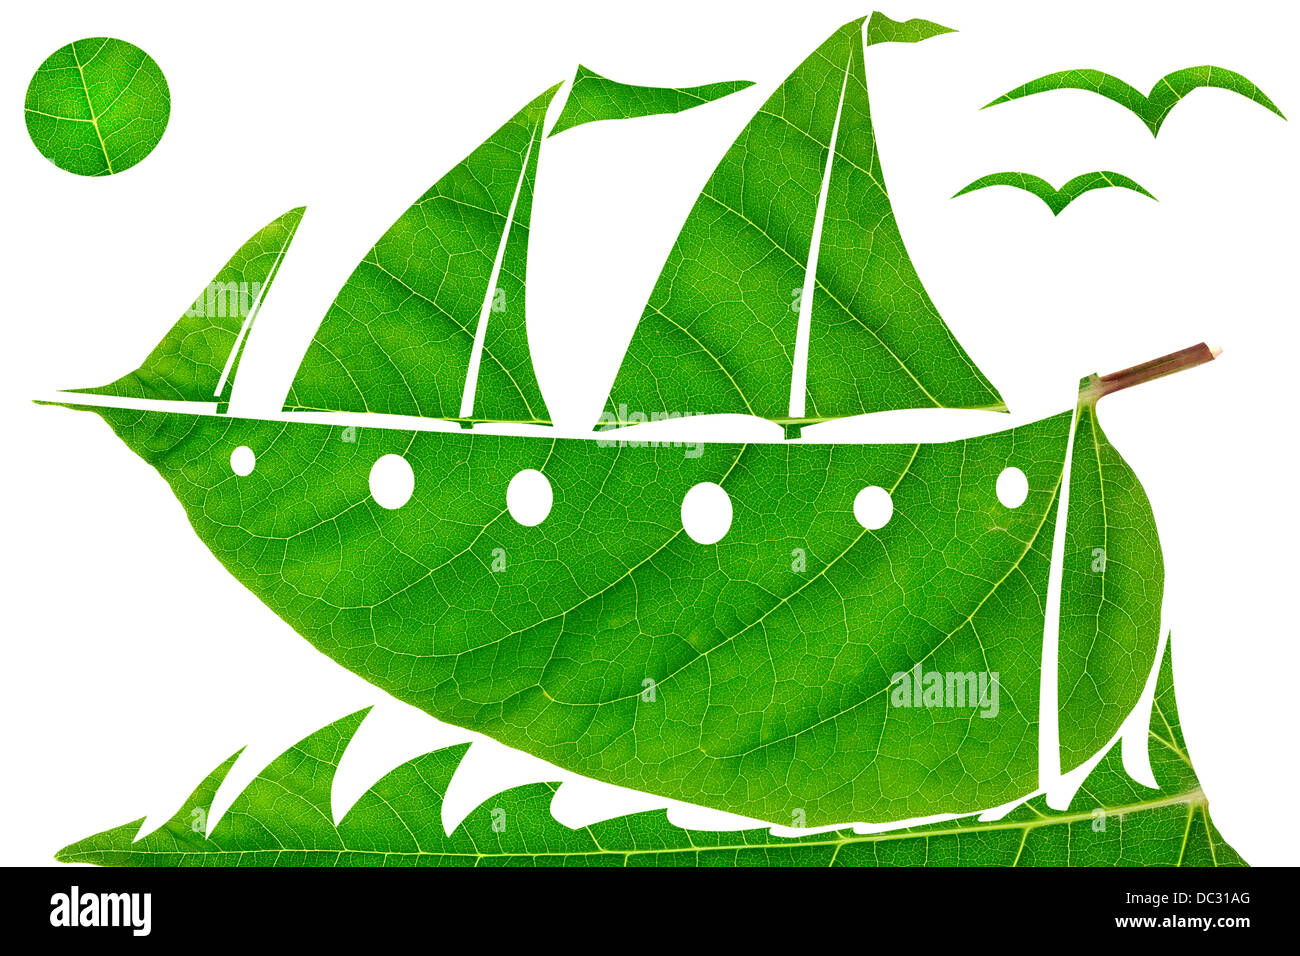 Green sailing yacht racing on the ocean waves concept. Naive collage from fresh green leaves. Isolated - Stock Image